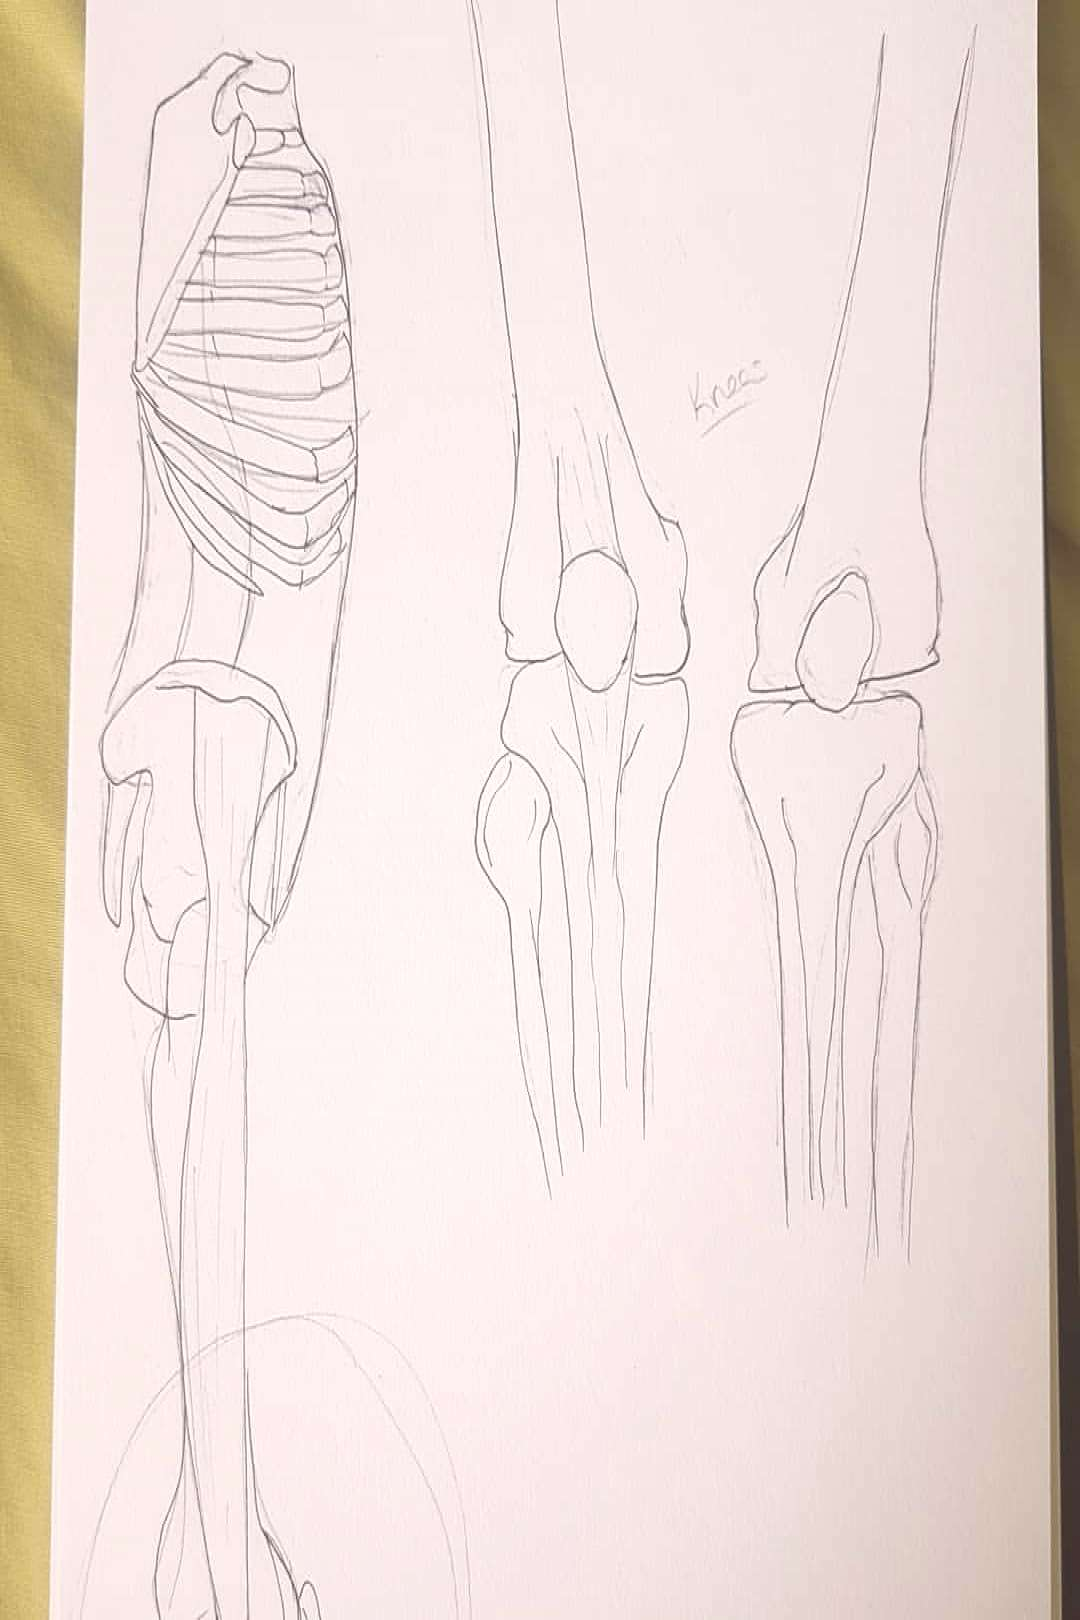 I forgot about drawing these a few months ago, some bone anatomy